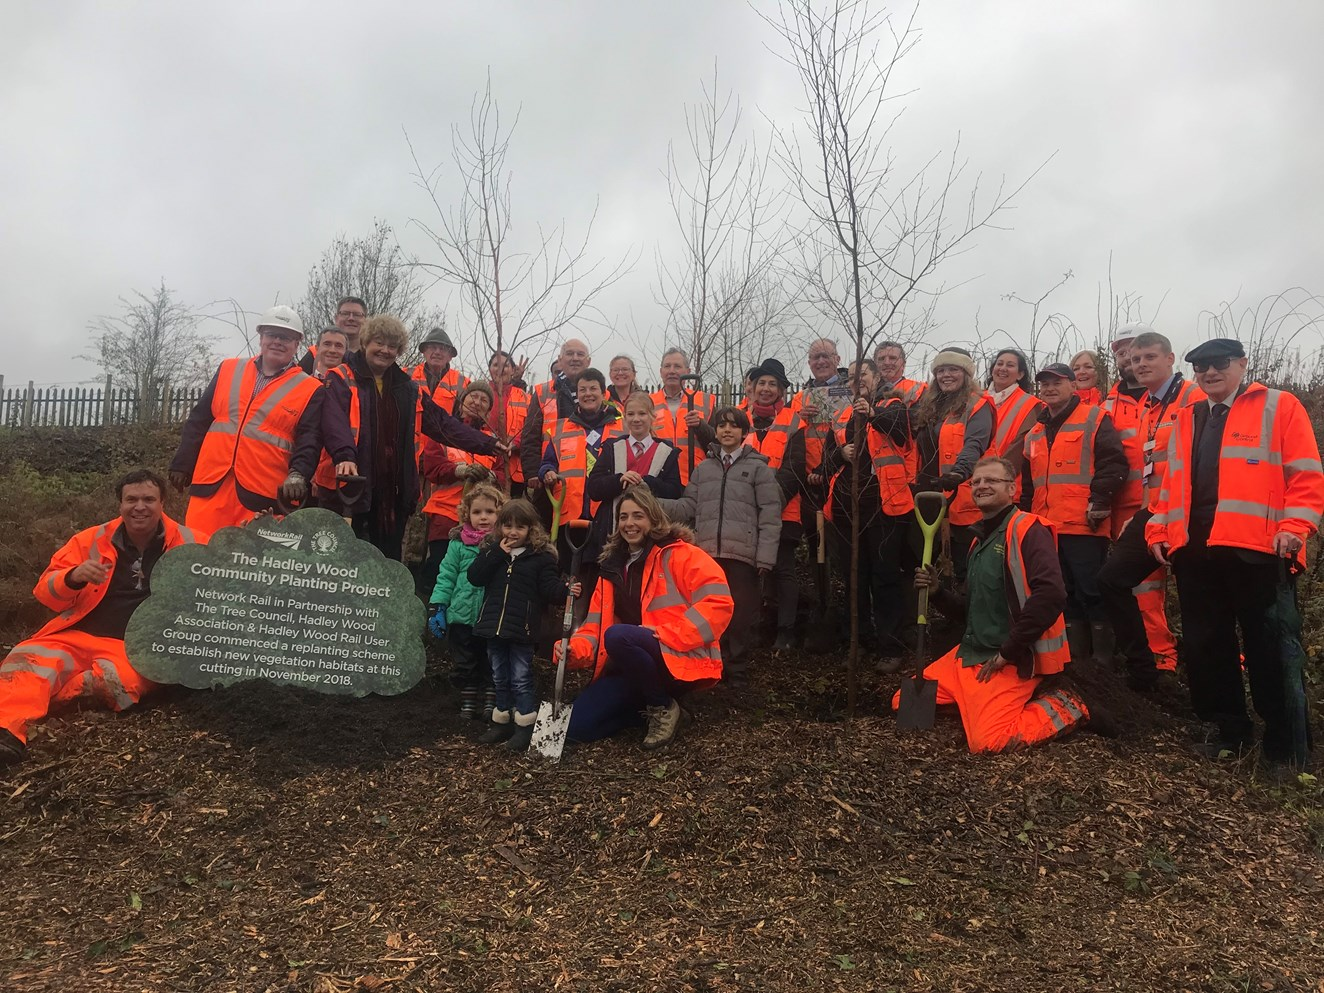 Network Rail launches new railway hedge planting trial during National Tree Week: Members of the local Hadley Wood community, Tree Council and Network Rail at tree planting